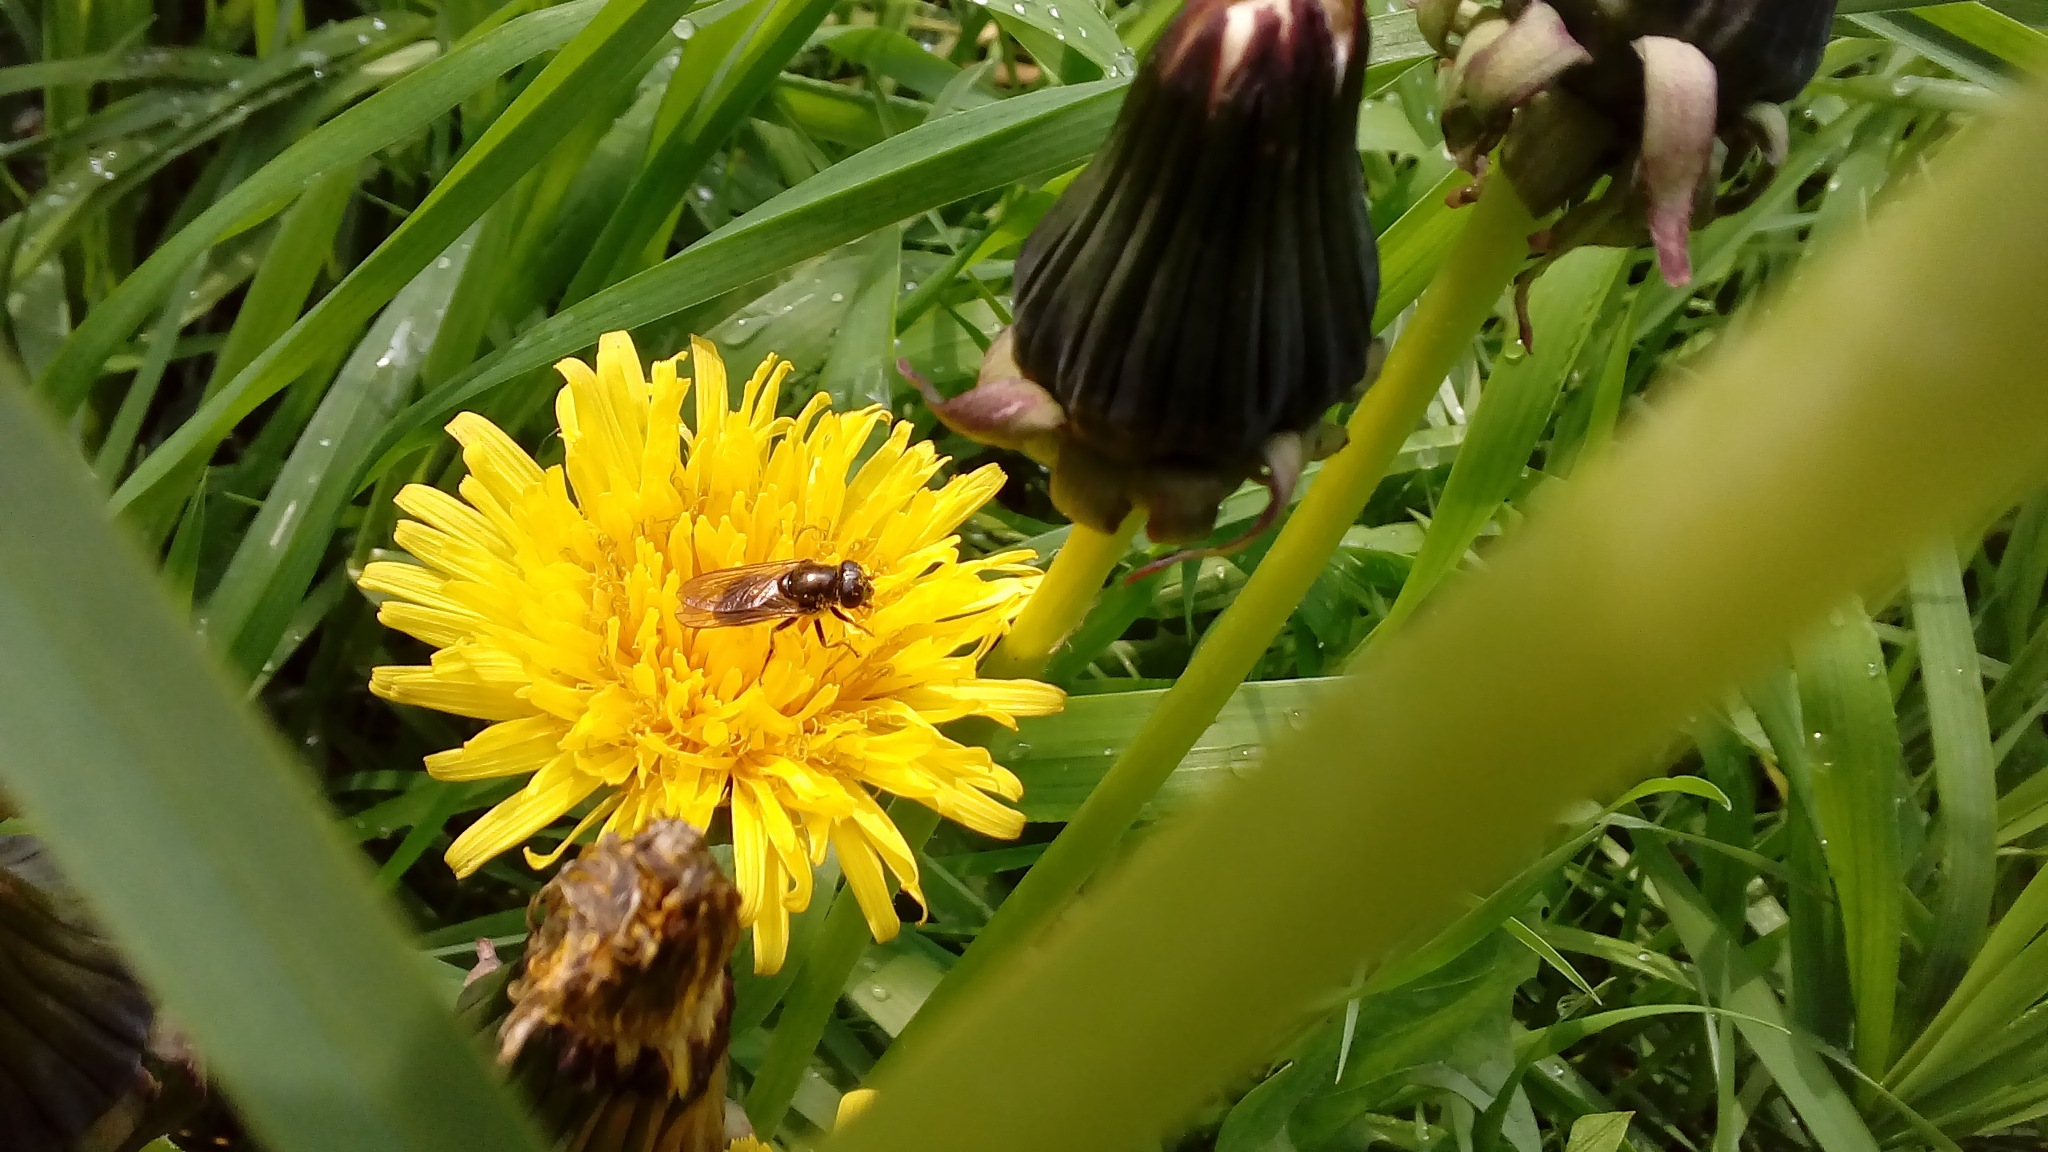 Wasp on dandelion by Angelica Ars